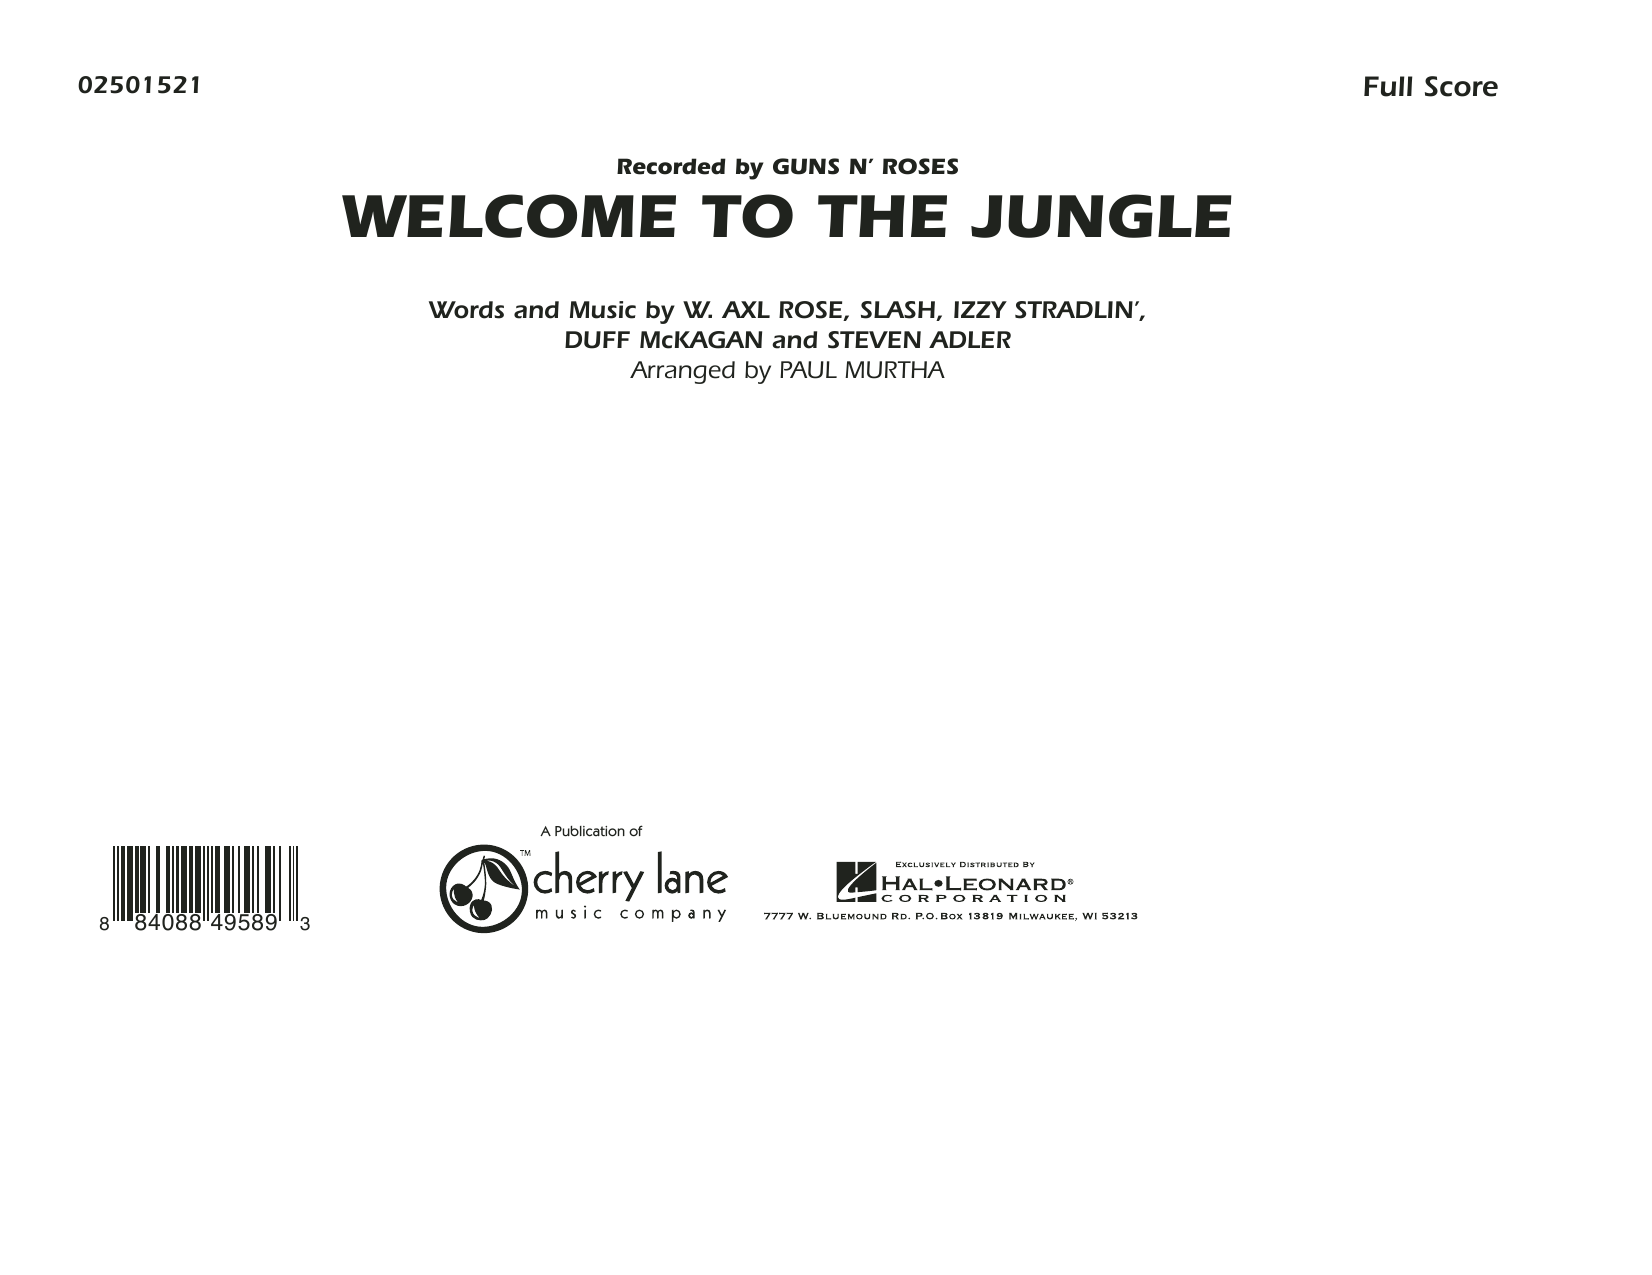 Welcome To The Jungle (COMPLETE) sheet music for marching band by Paul Murtha, Axl Rose, Duff McKagan, Slash and Steven Adler. Score Image Preview.